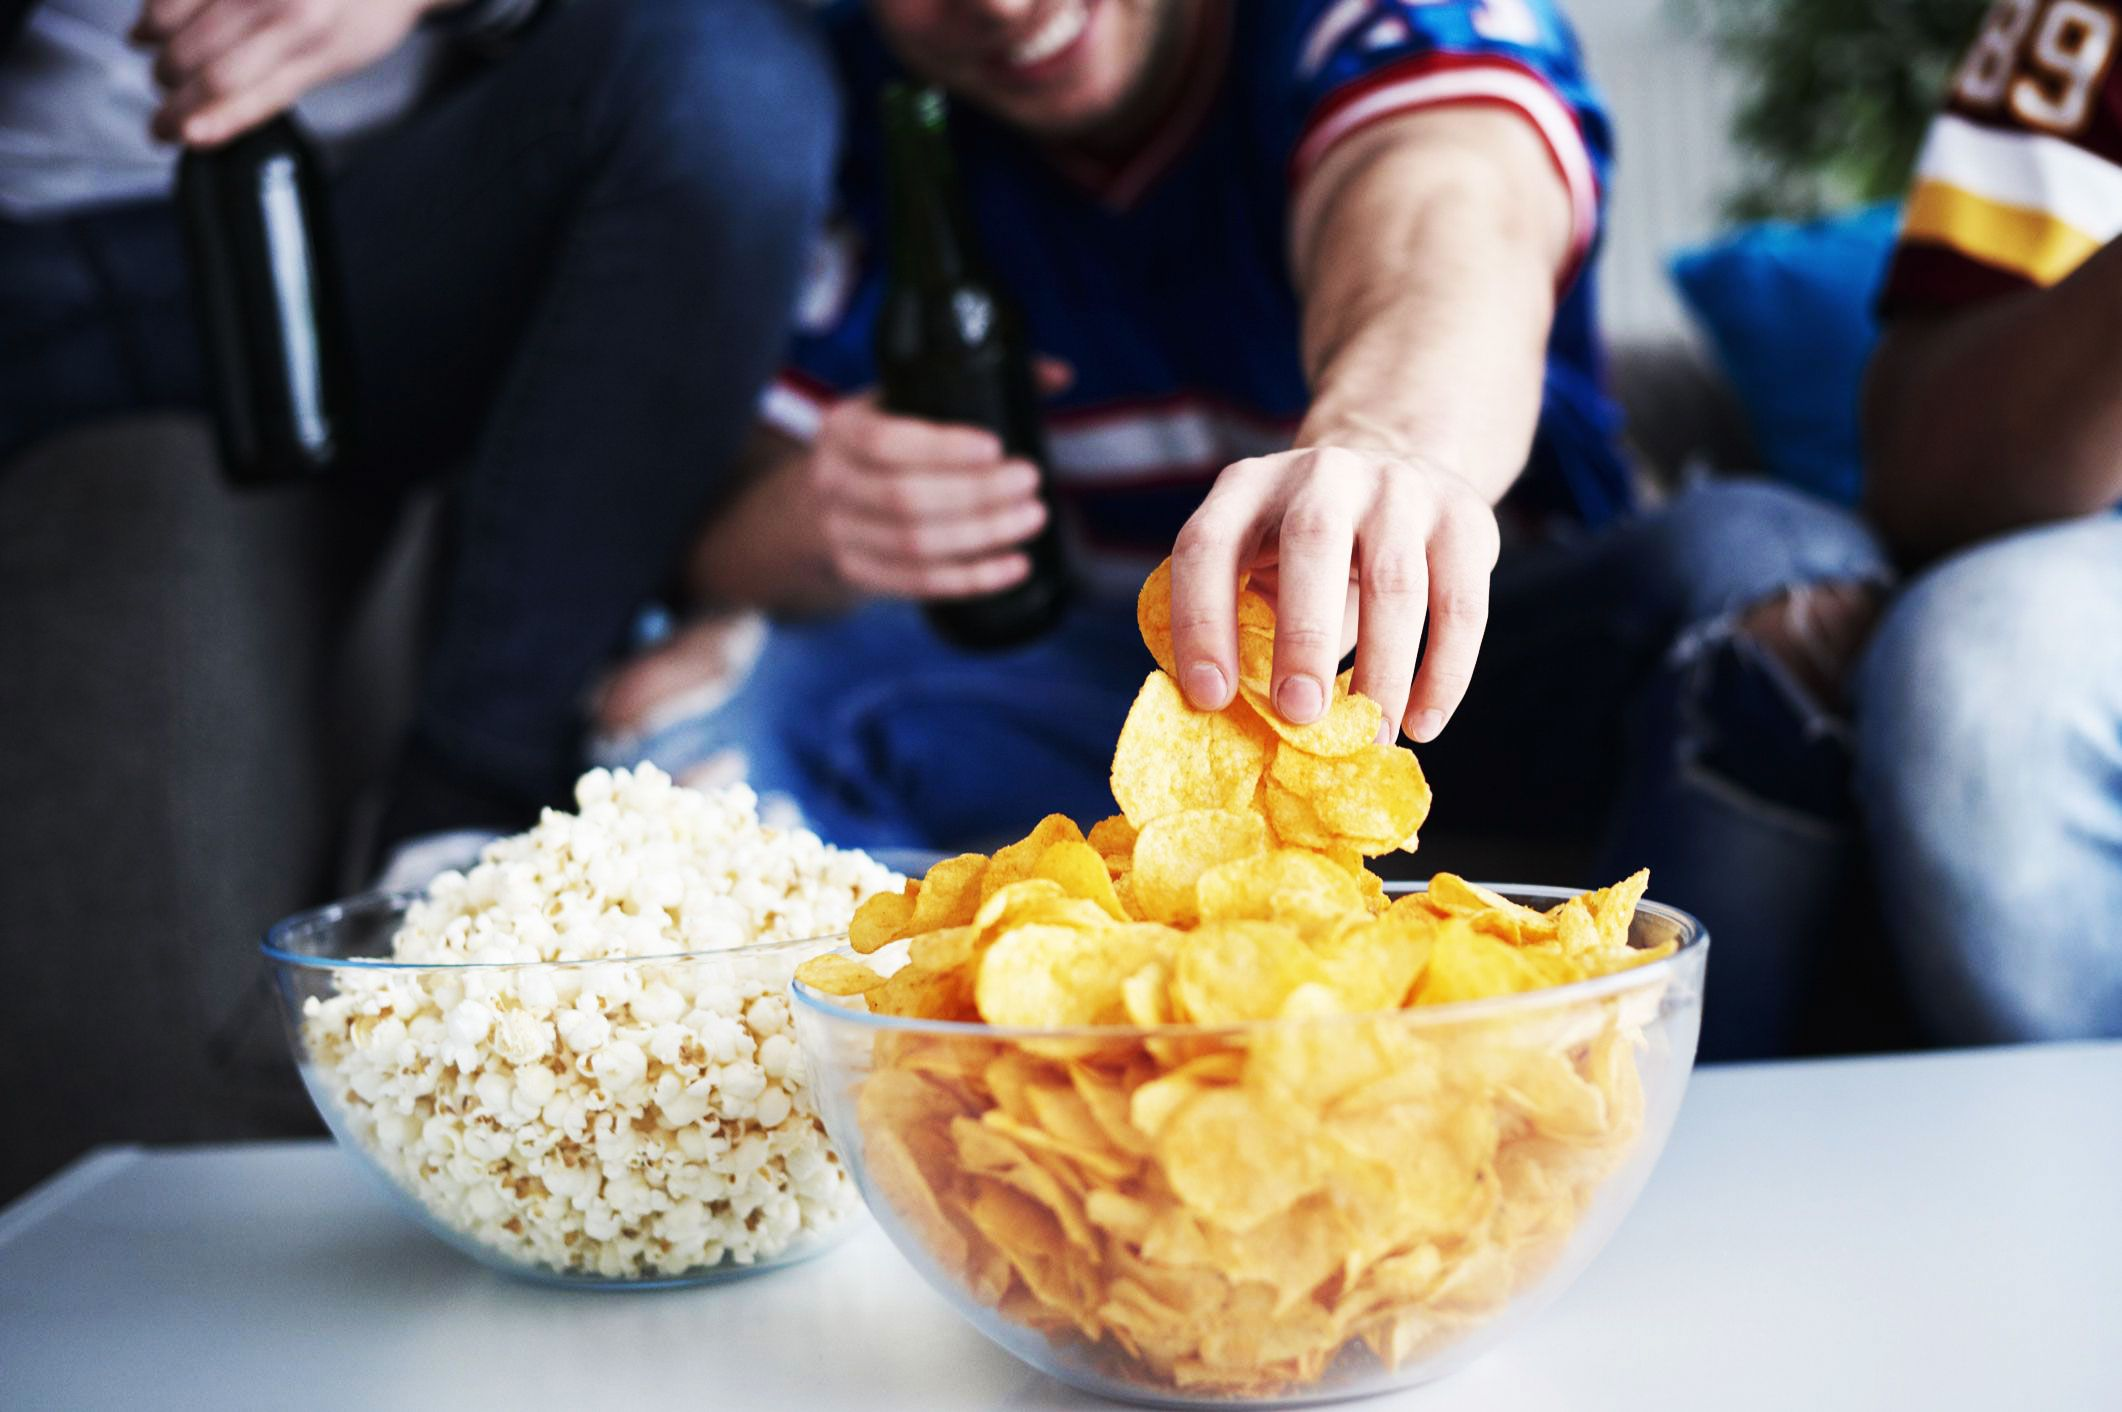 Why Can't I Eat Just One Crisp? Study Explains Science of Crunchy Foods